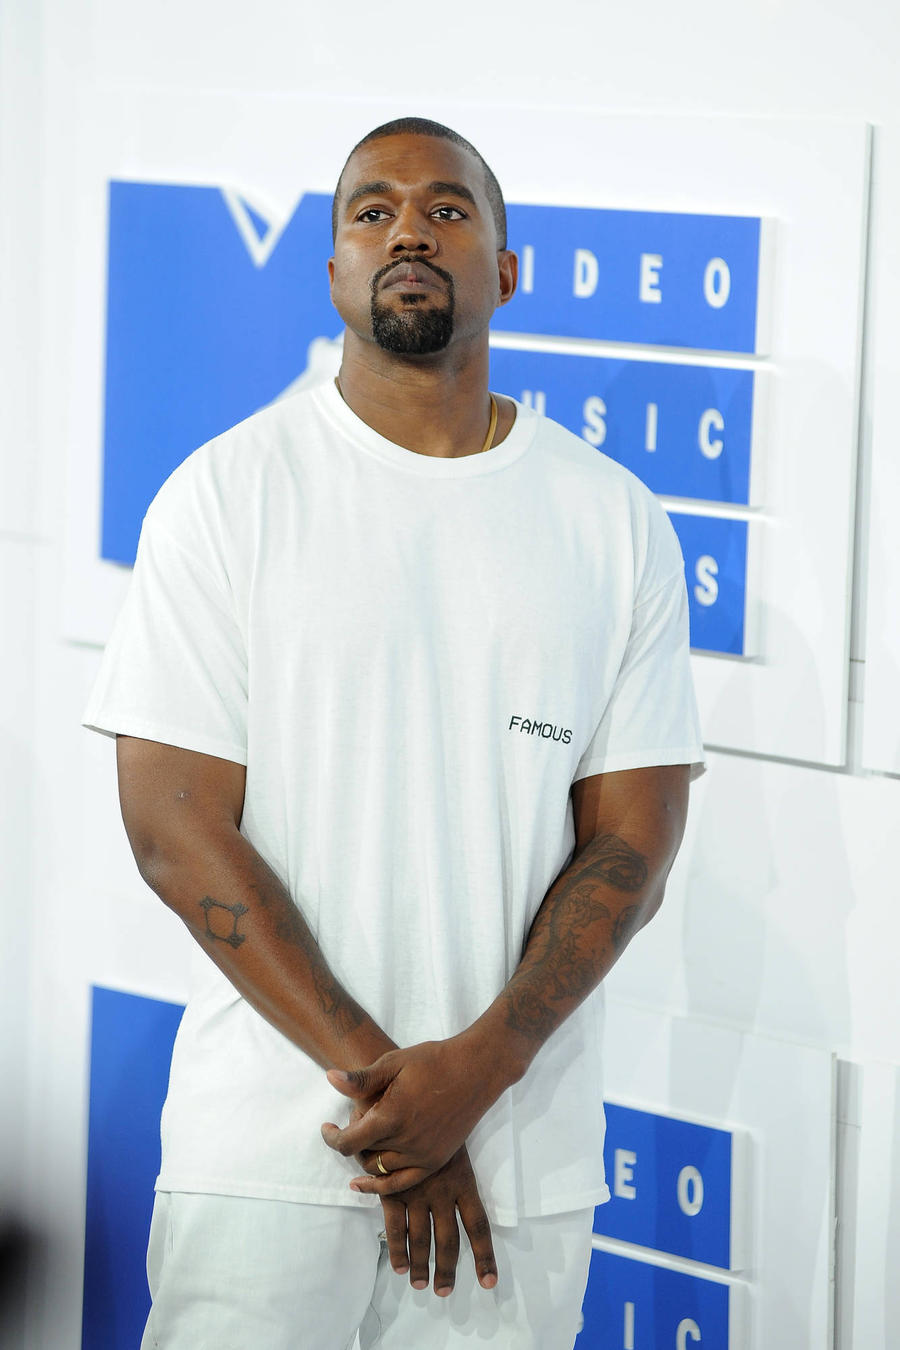 Kanye West Breaks Silence After Fashion Show Criticism